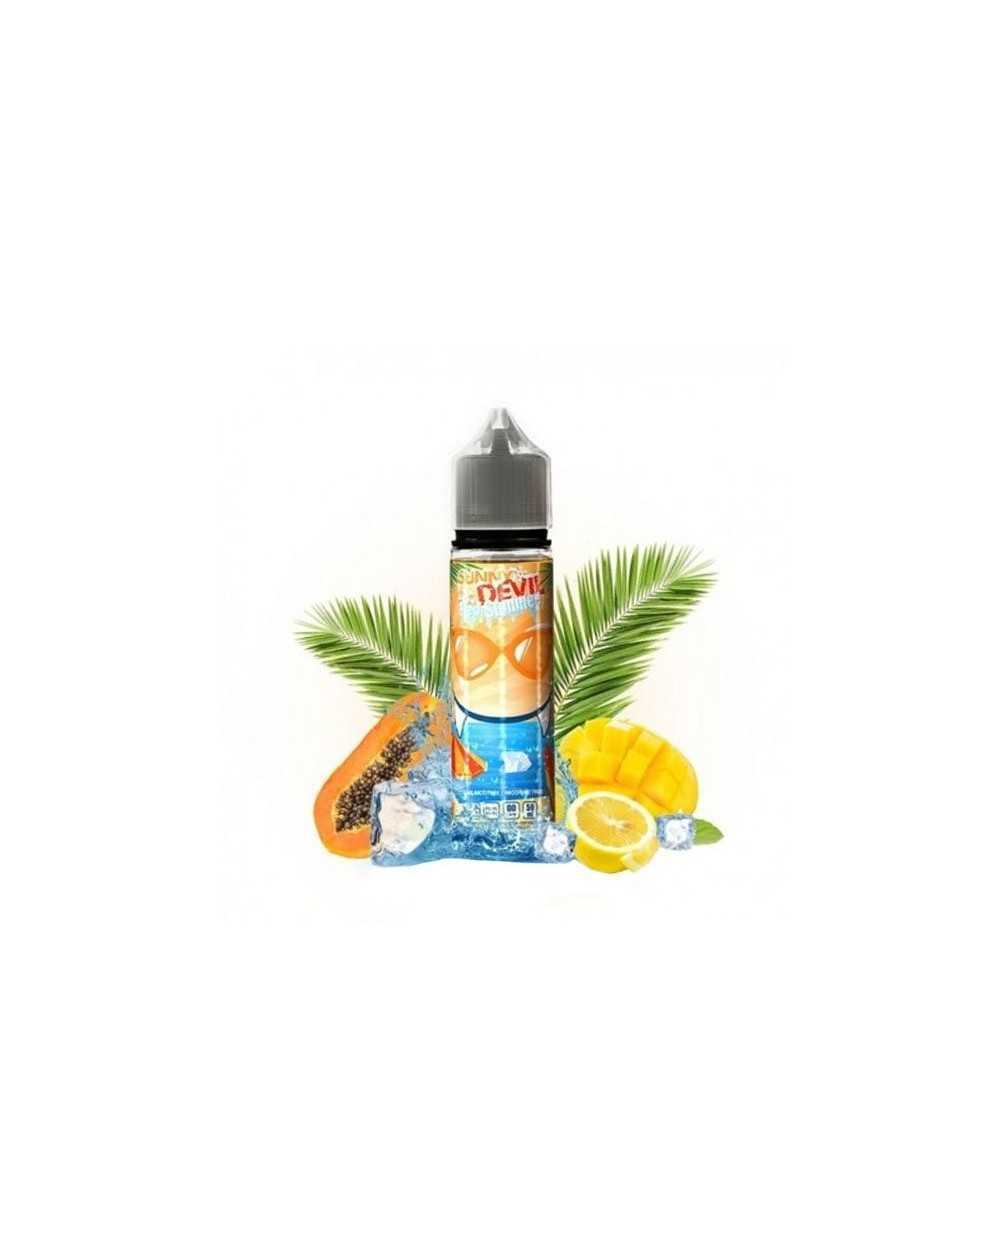 Sunny Devil 50ml - Avap Les Devils Fresh Summer-1